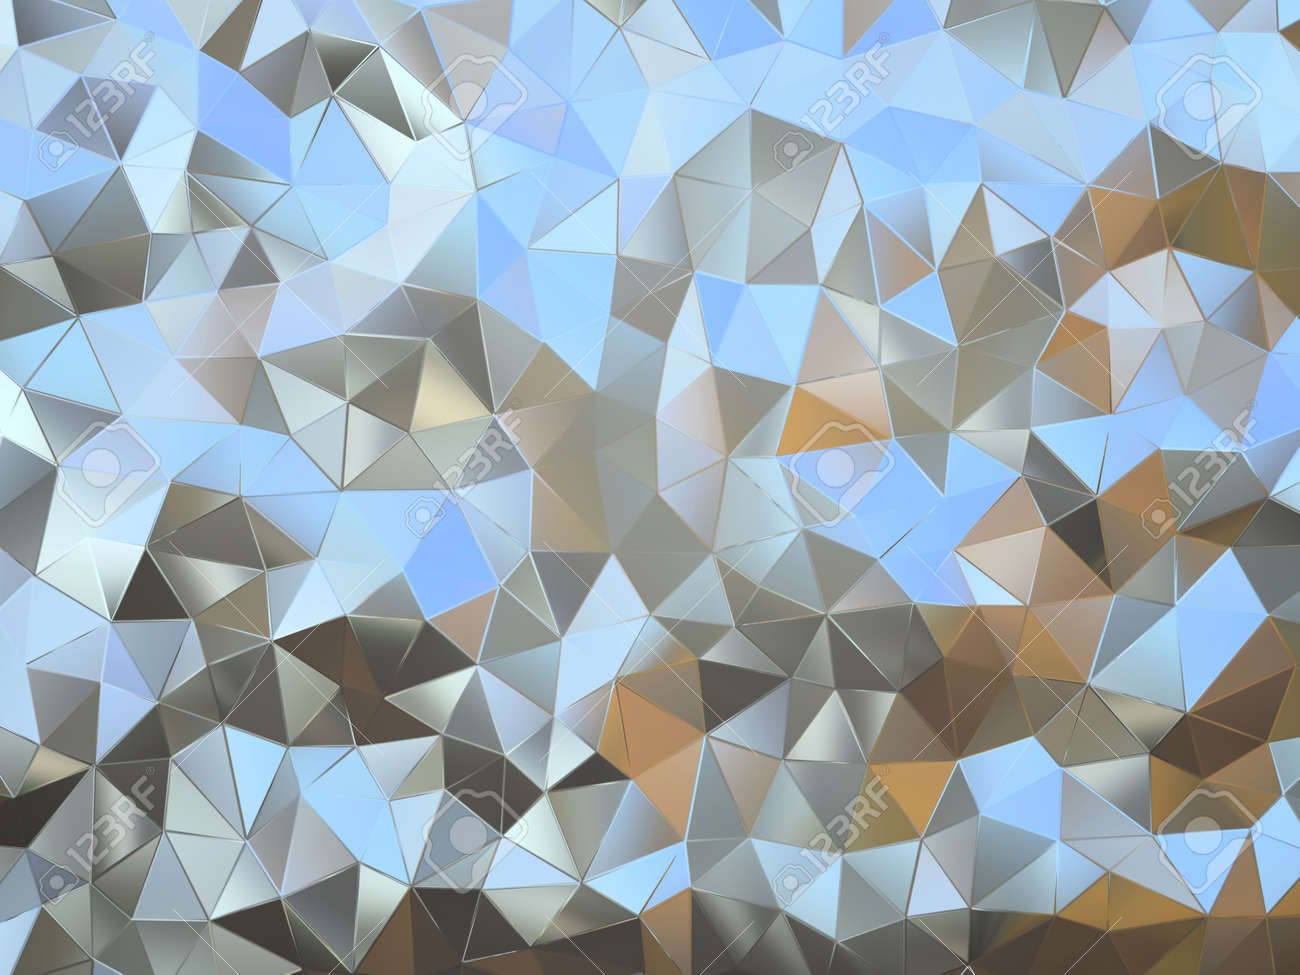 Abstract pattern of small metal pieces illustration Stock Photo - 15698712